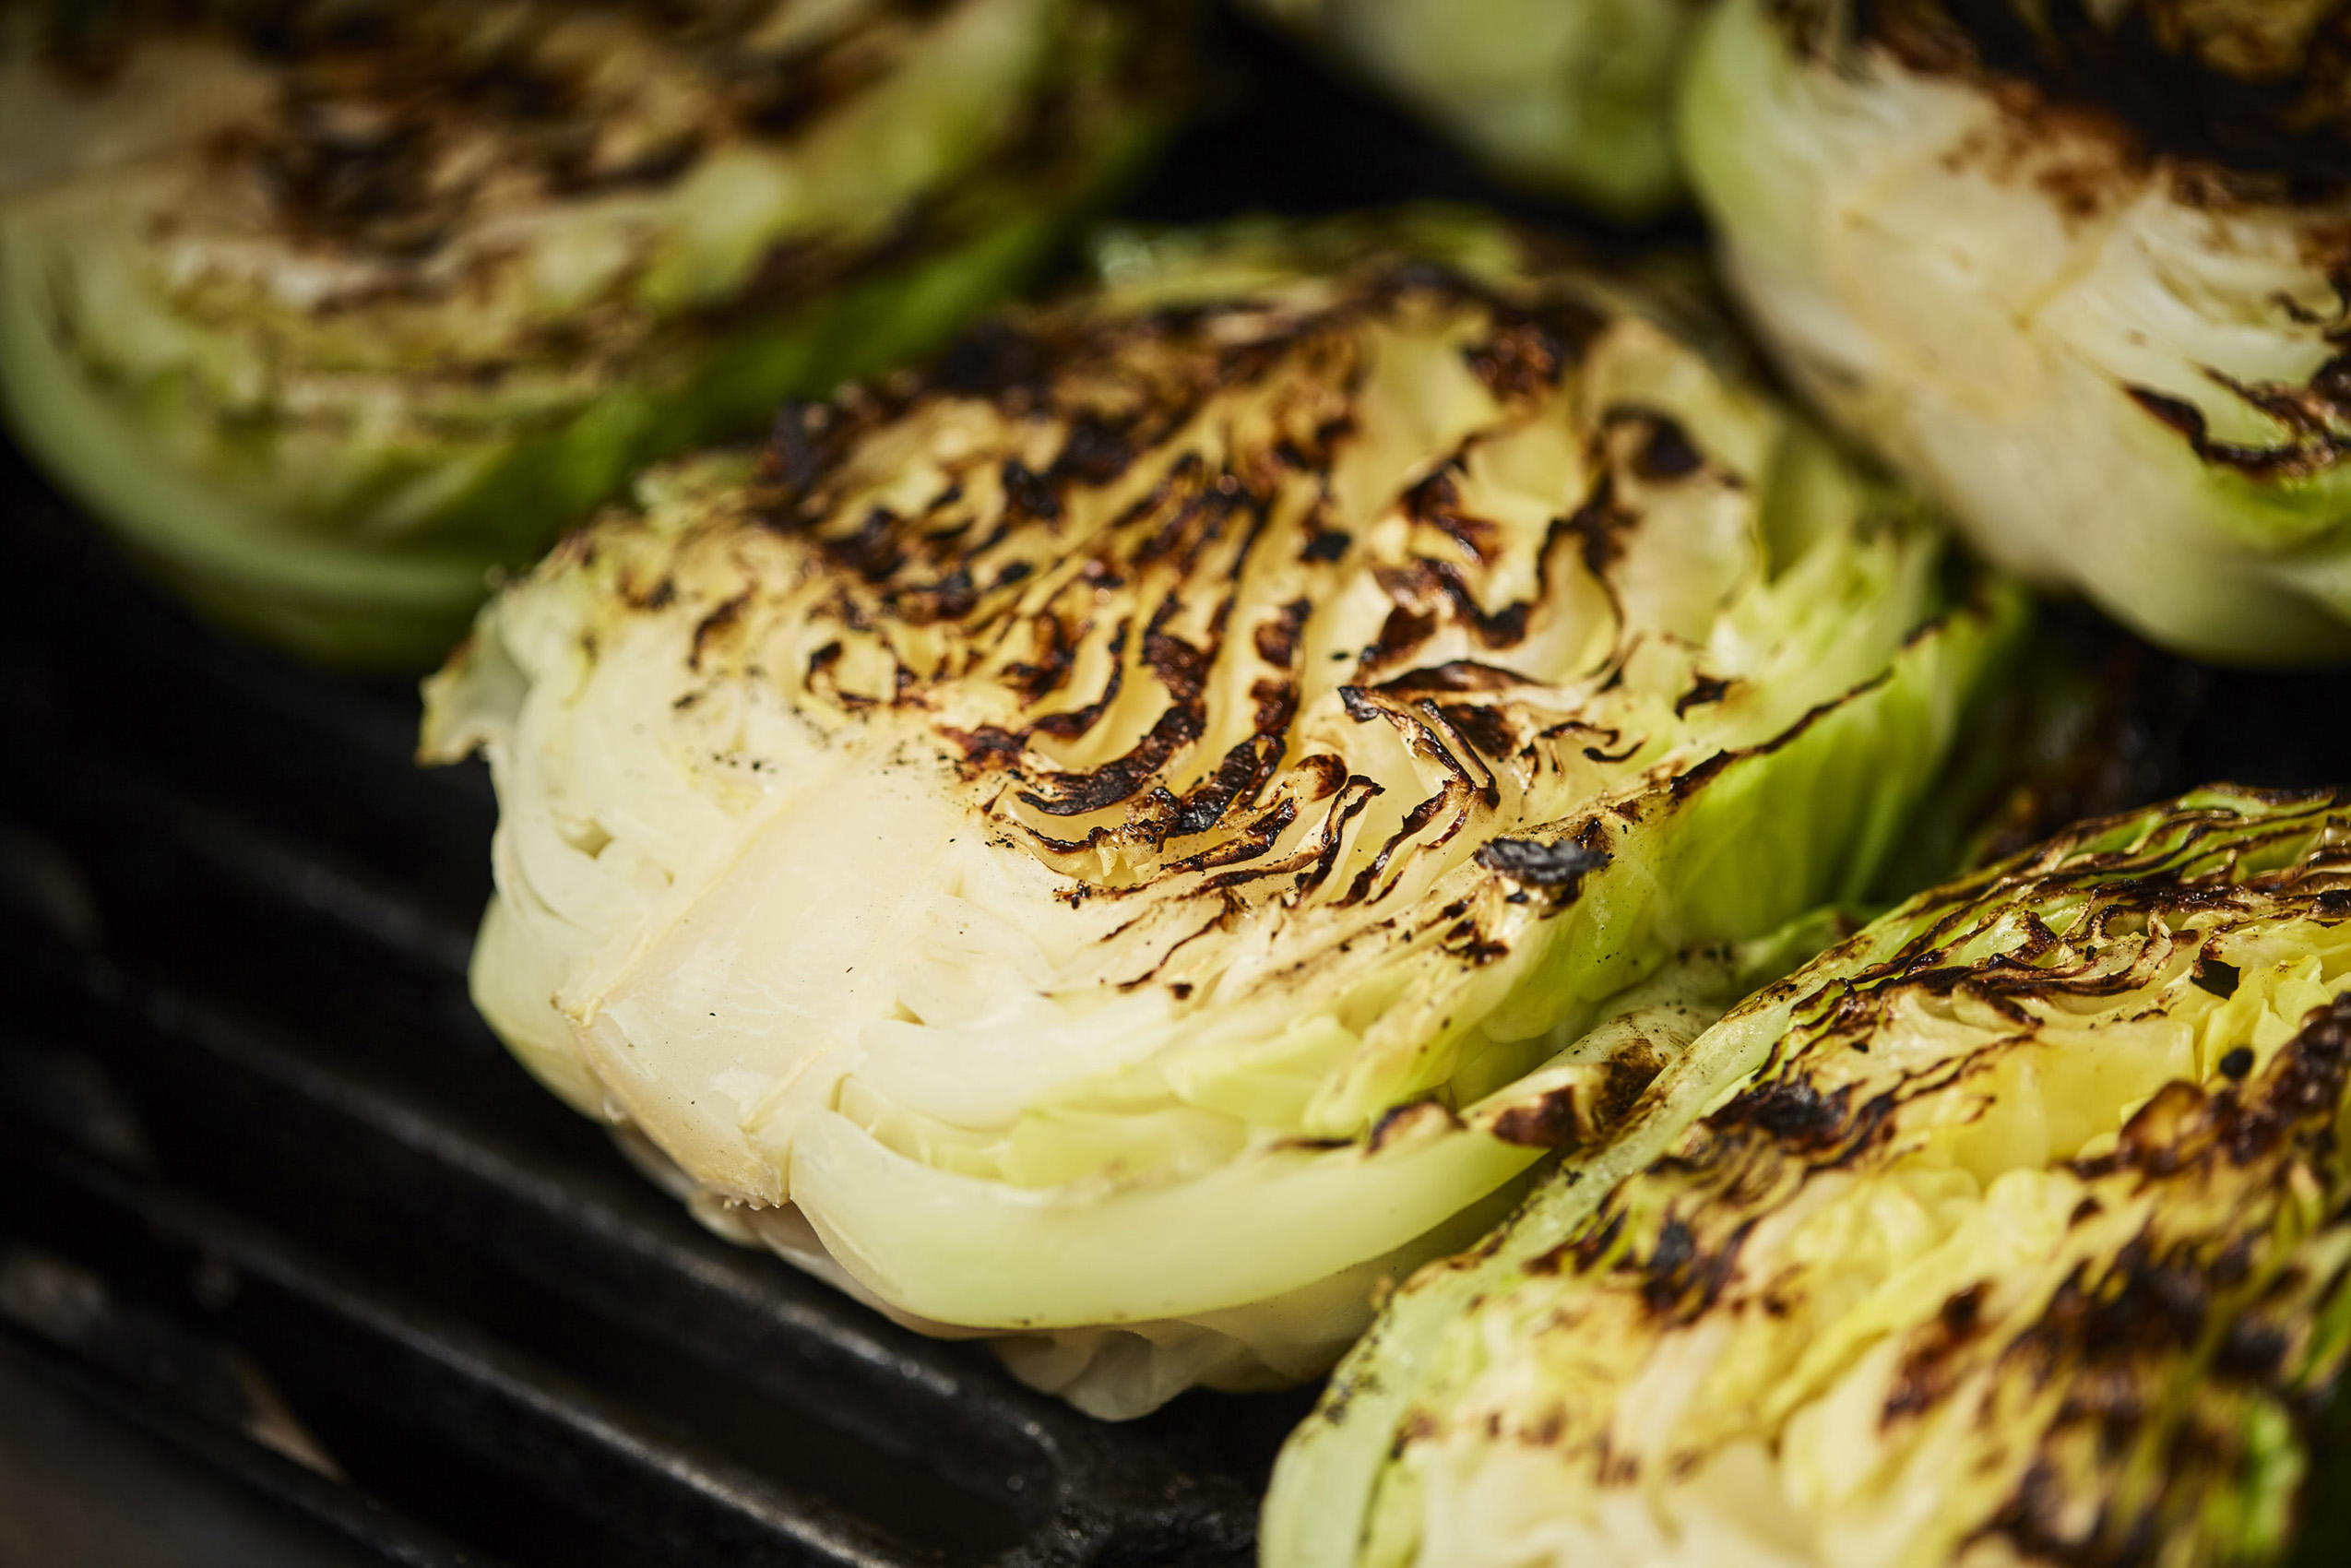 SteveRyan_Photographer_Food_BBQHispiCabbage_136